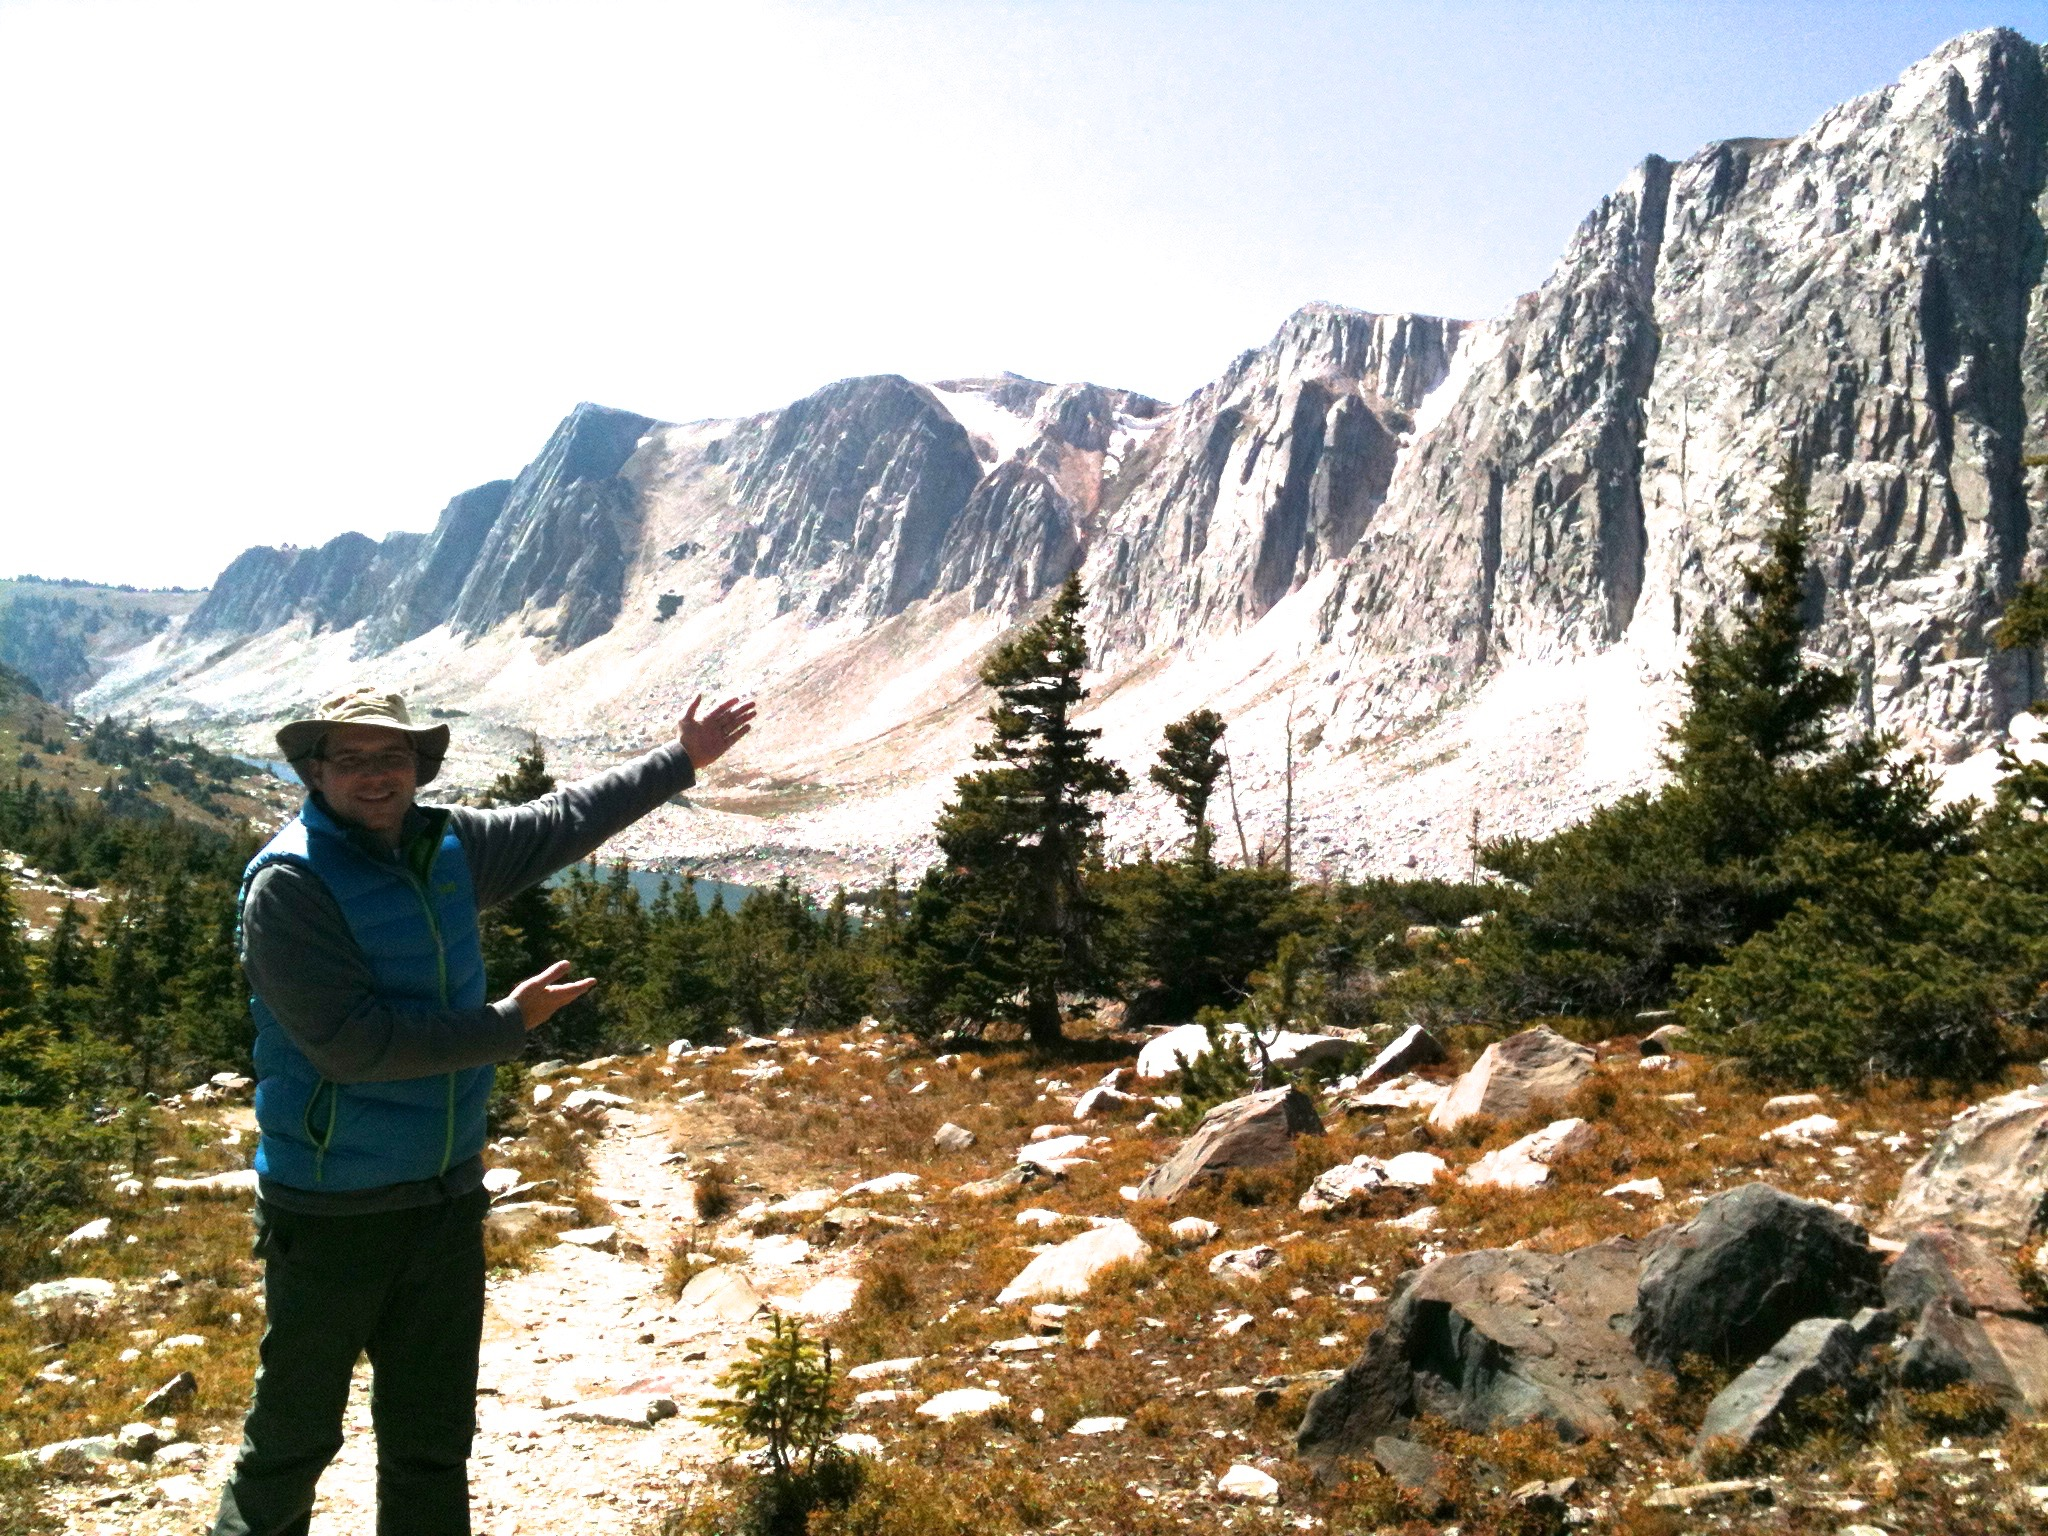 Micah revelling in the beauty of the Snowy Mountain Range in Wyoming.